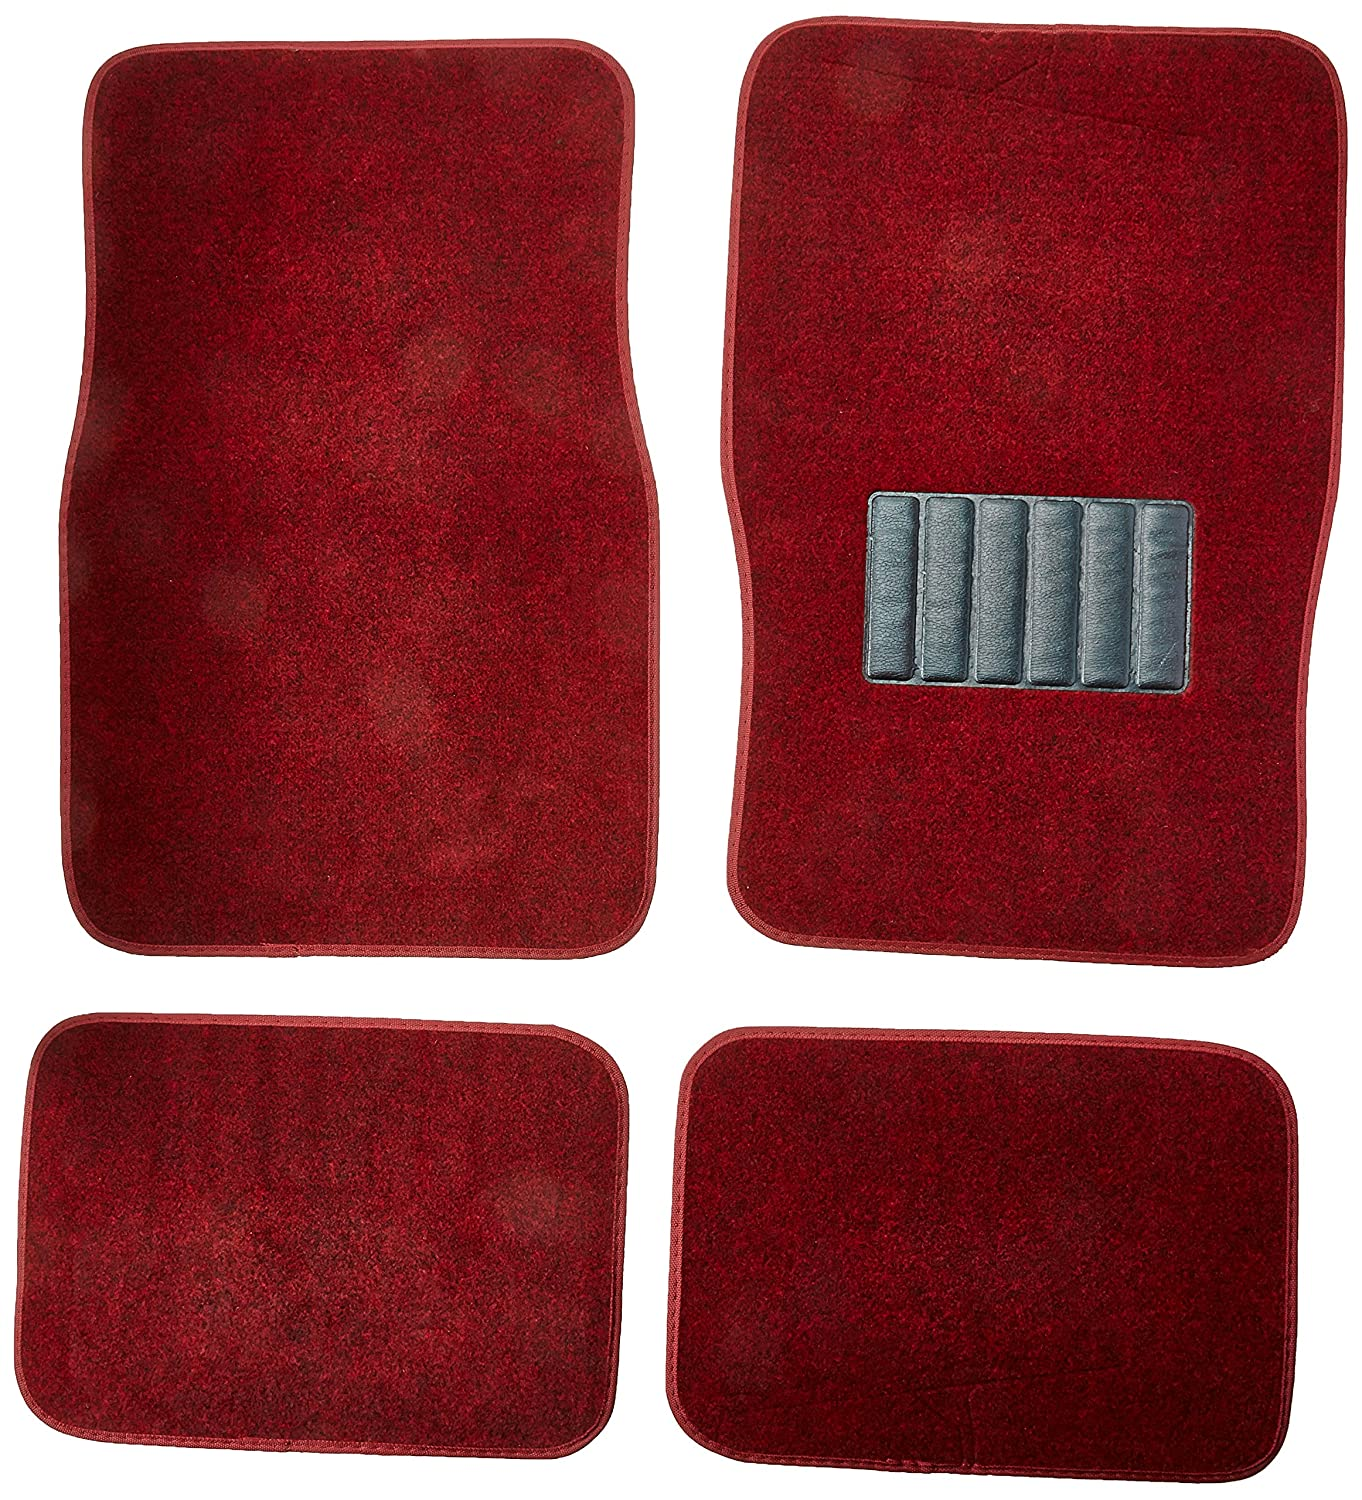 Ford Fusion Carpet Molded Interior Replacement Kit